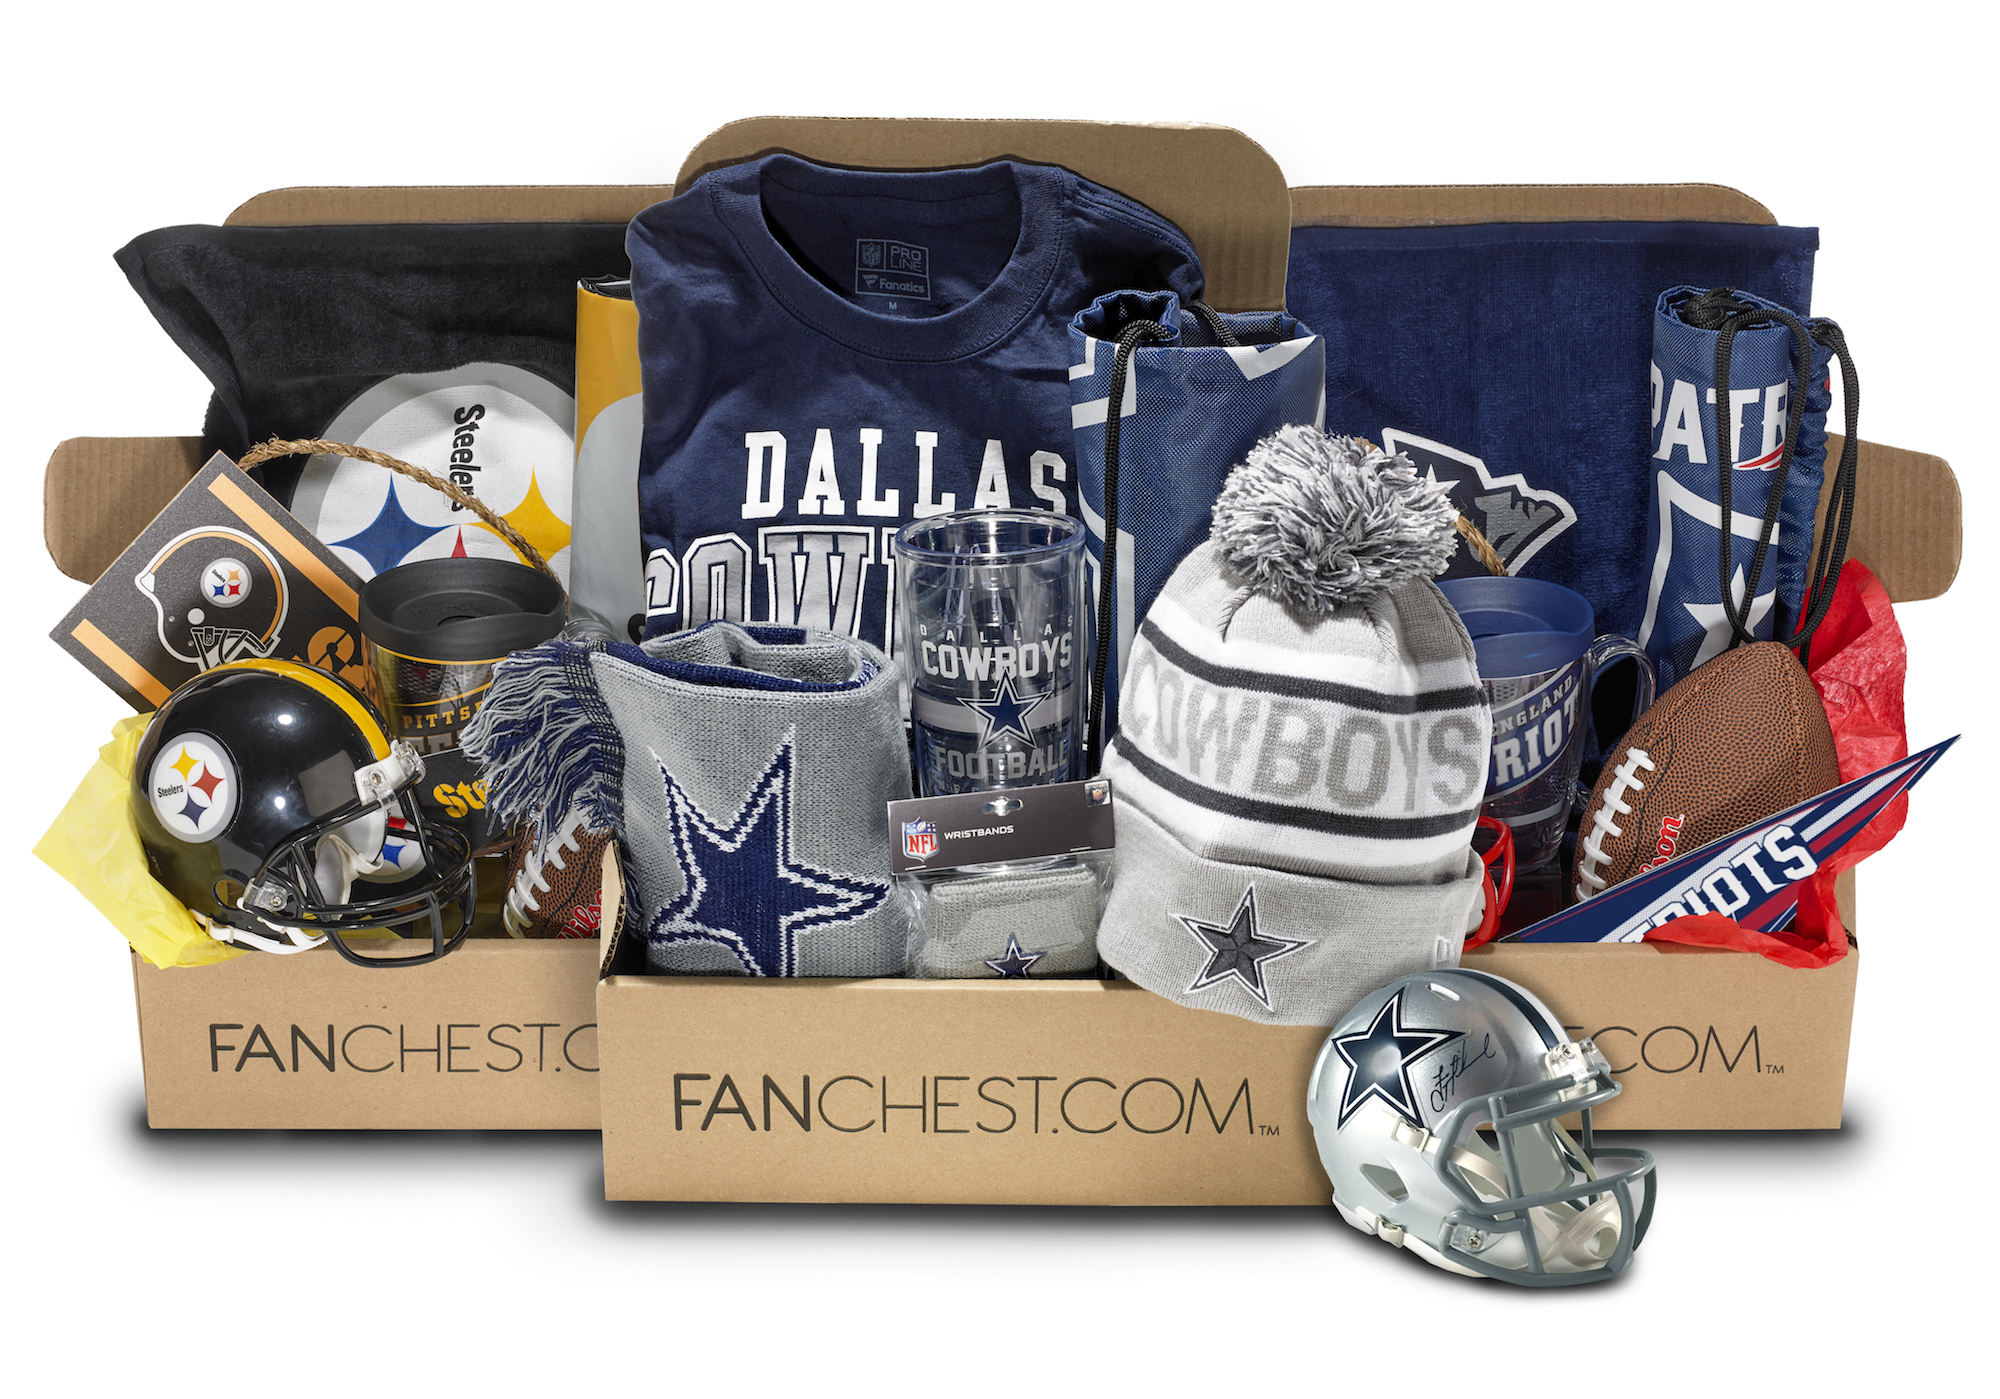 Fanchest raises $4M in seed funding to become the best gift for sports fans | TechCrunch